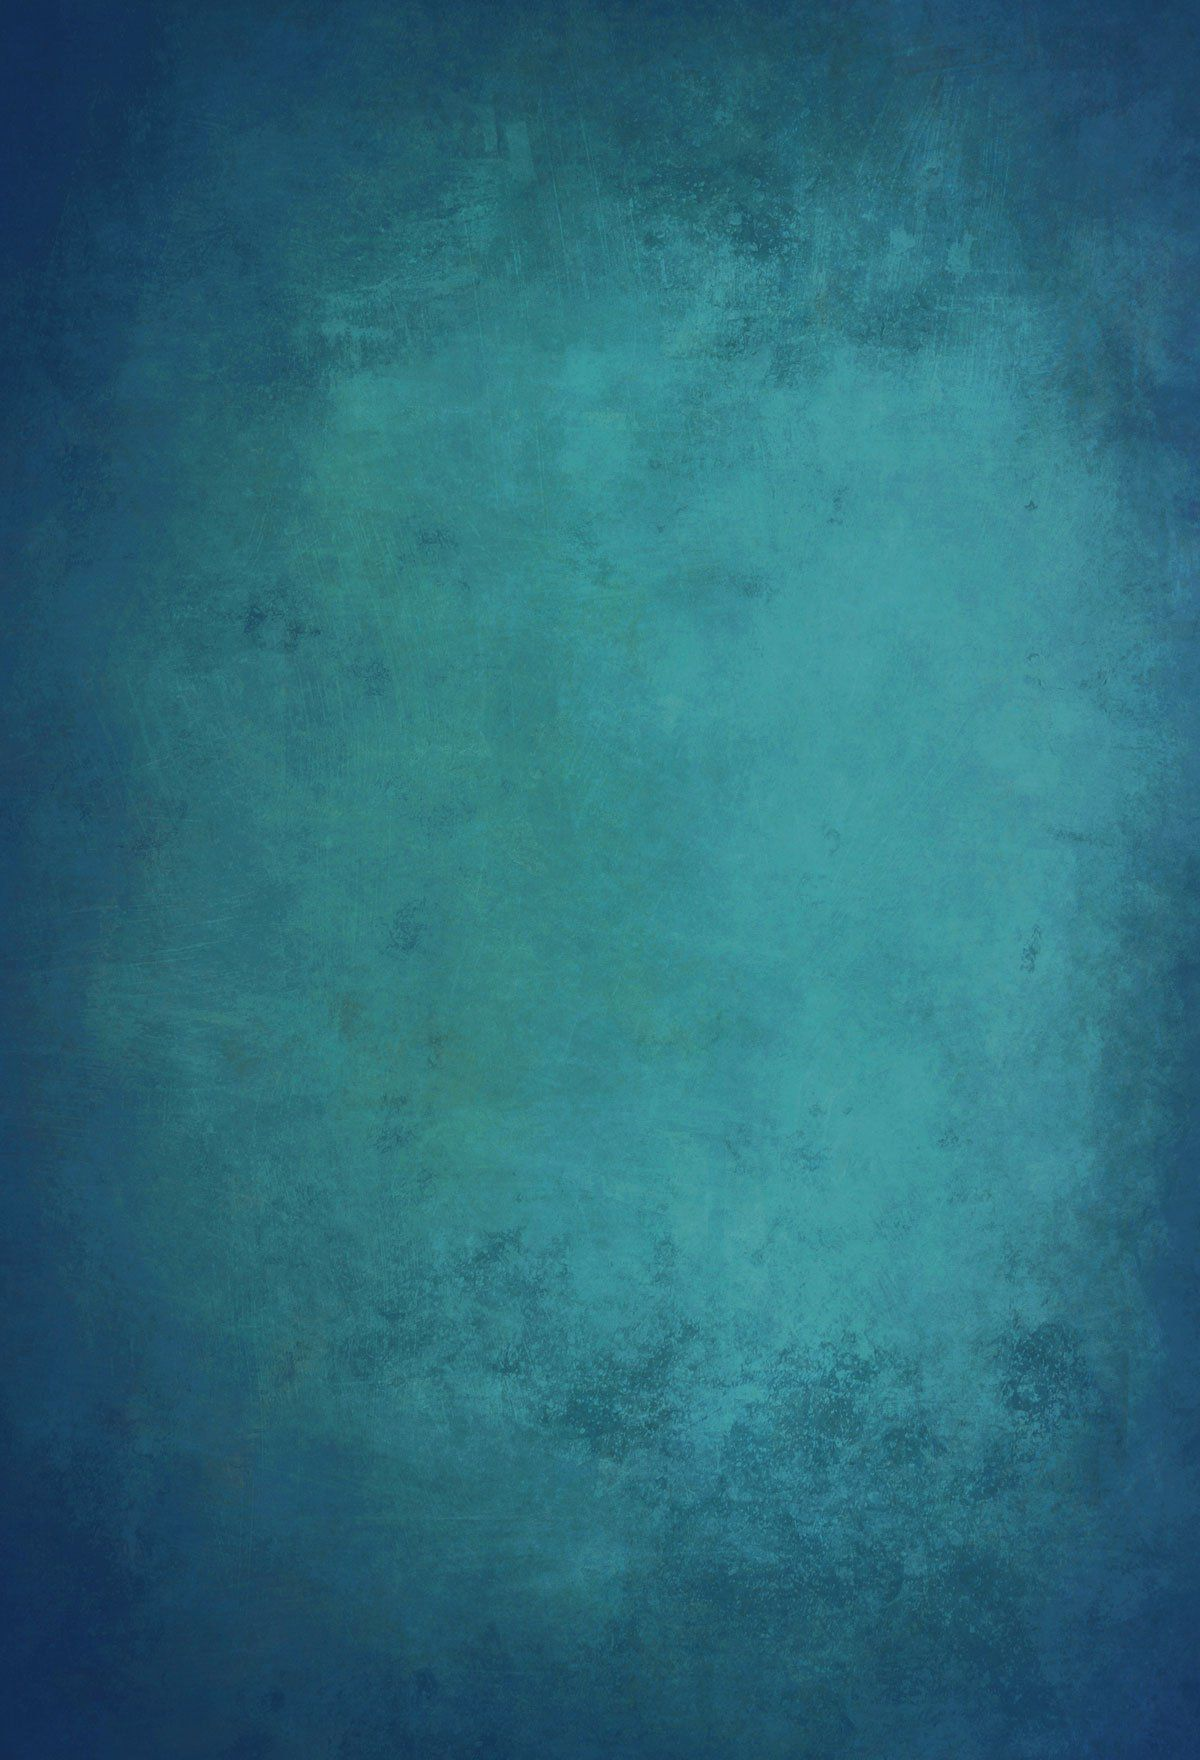 Blue And Green Dining Room: Kate Deep Cold Blue Green Backdrop Texture Abstract